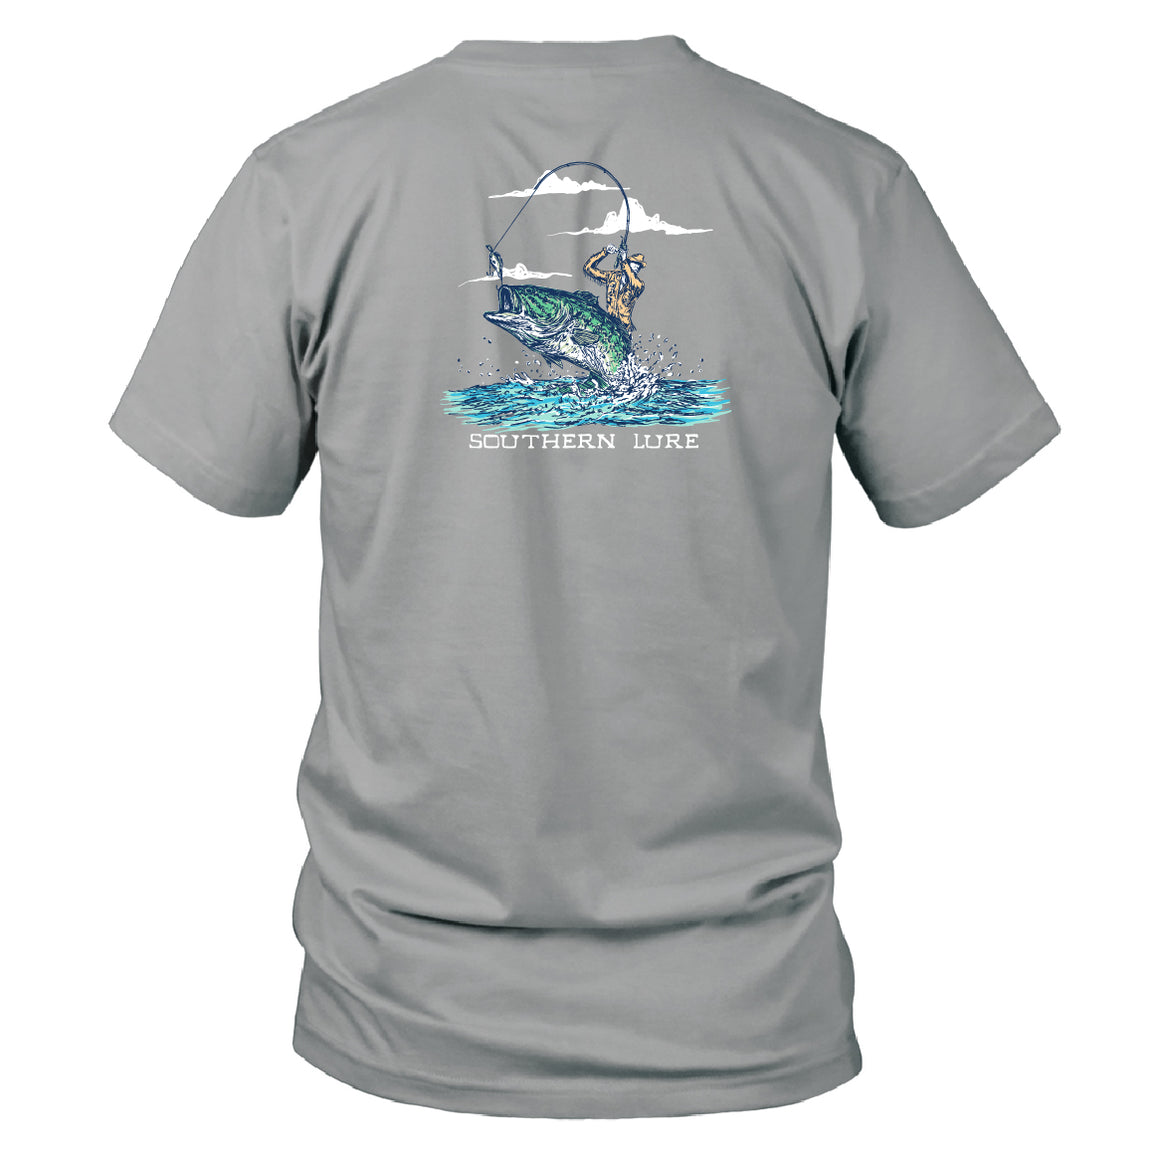 Youth & Toddler- Short Sleeve Tee - Cowboy Fisherman - Granite